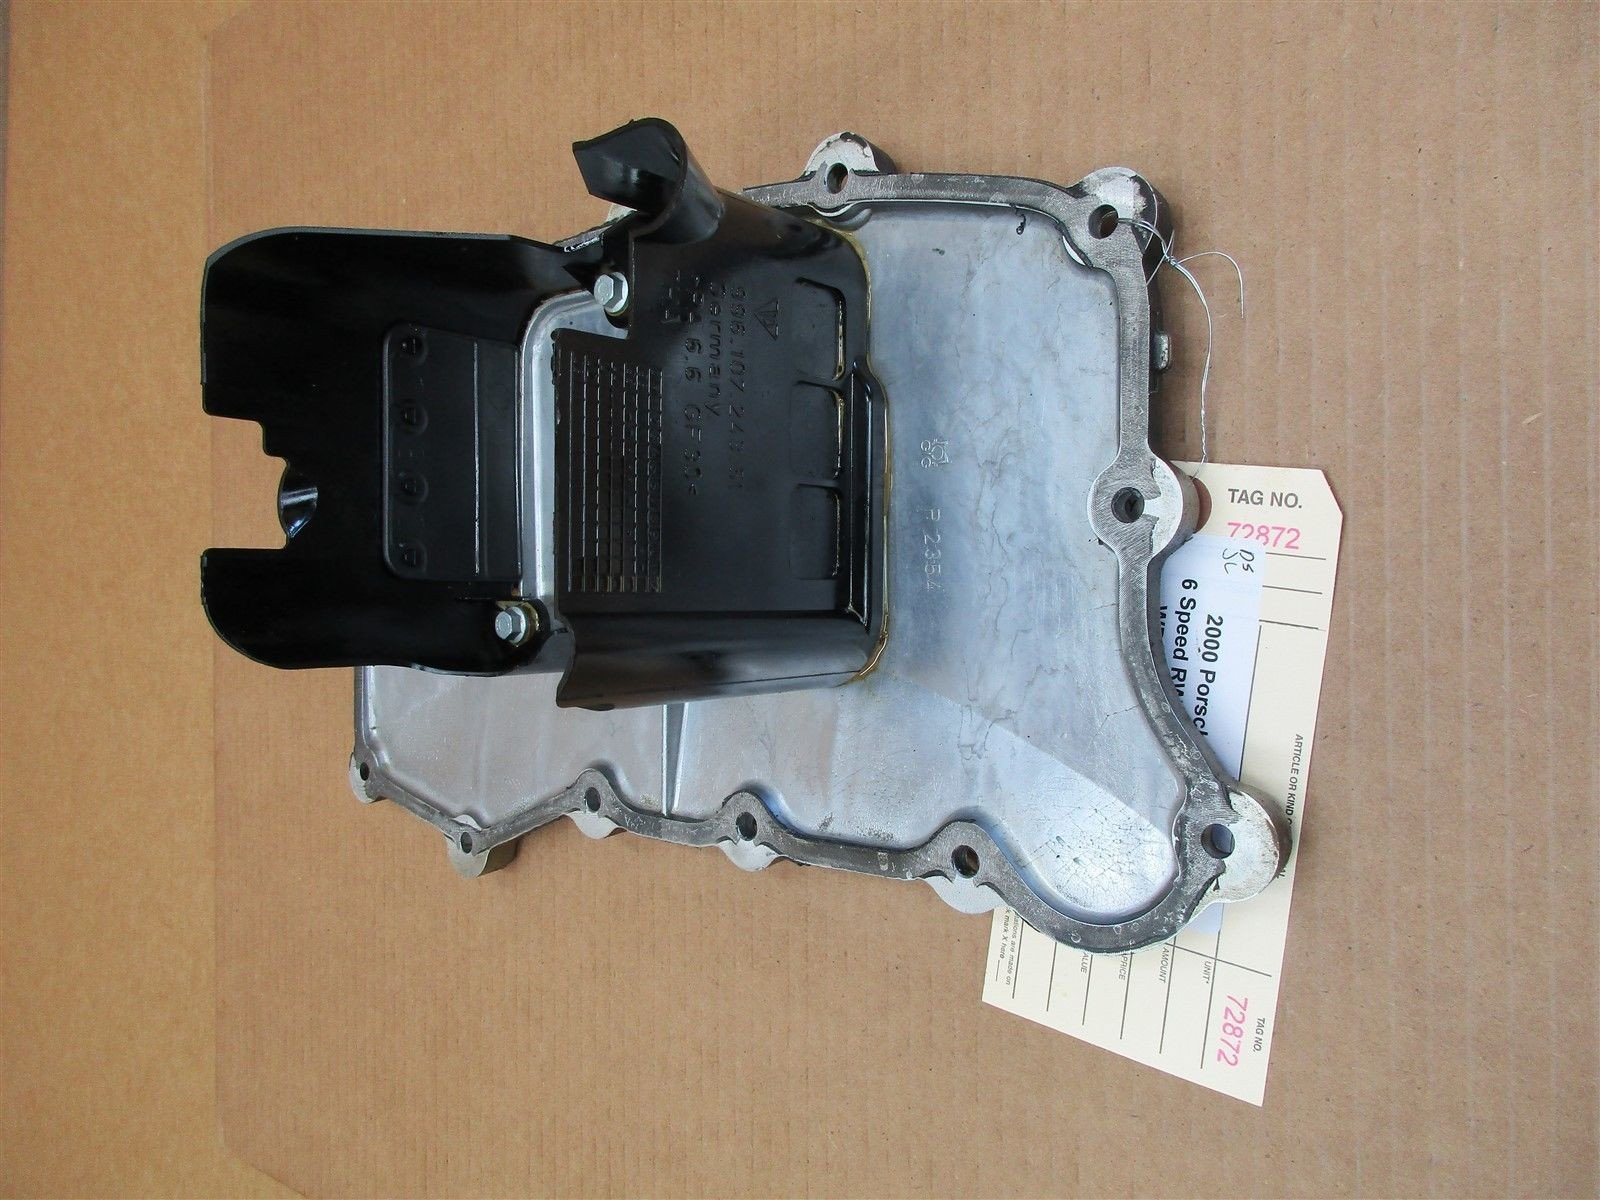 00 Boxster S RWD Porsche 986 Engine 3.2 OIL PAN 9961073108R 99610724351 23,552